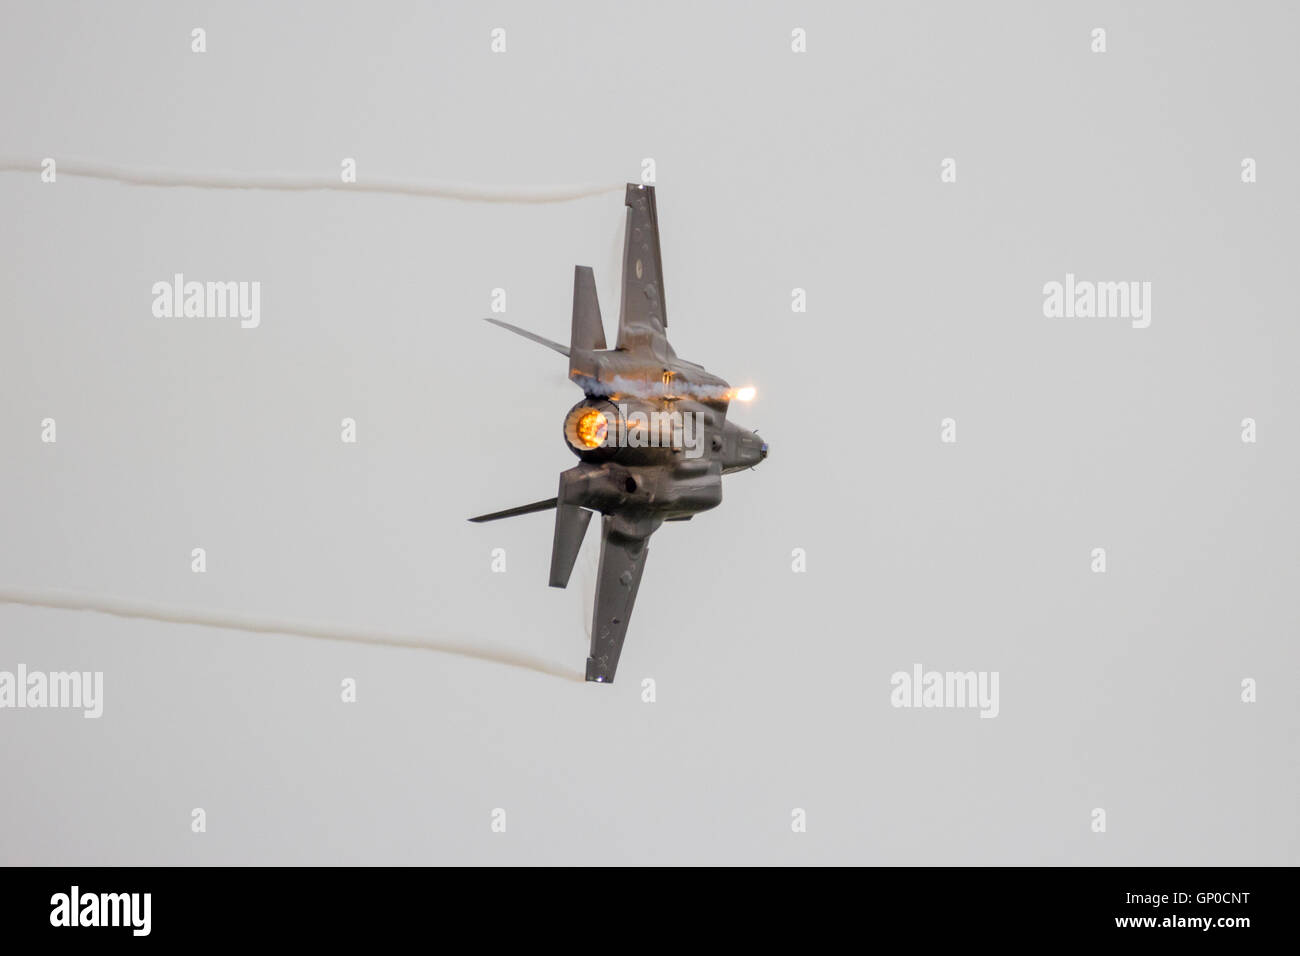 F-35 Lightning II firing off flares during a flyby on it's European debut in Leeuwarden, The Netherlands - Stock Image